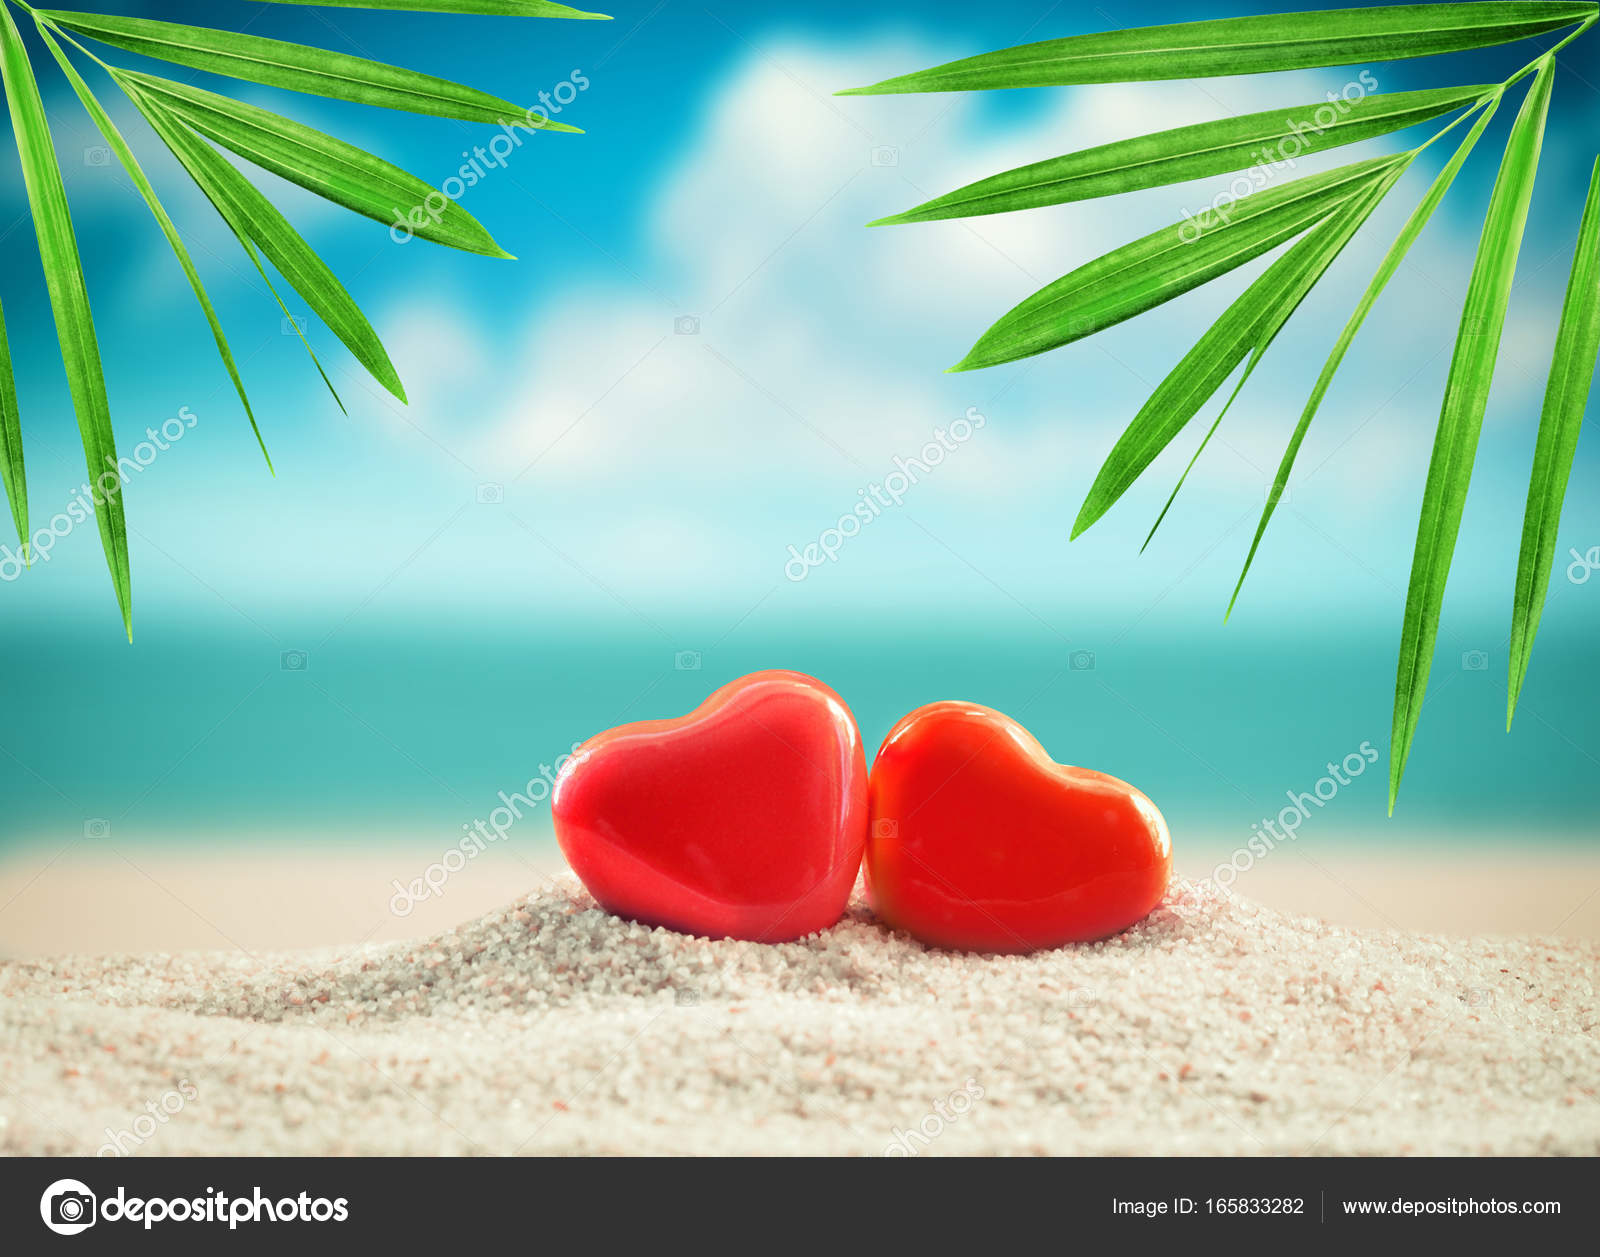 Beach valentines day greeting card newlyweds stock photo beach valentines day greeting card with heart and palm photo by catwoman10 kristyandbryce Gallery